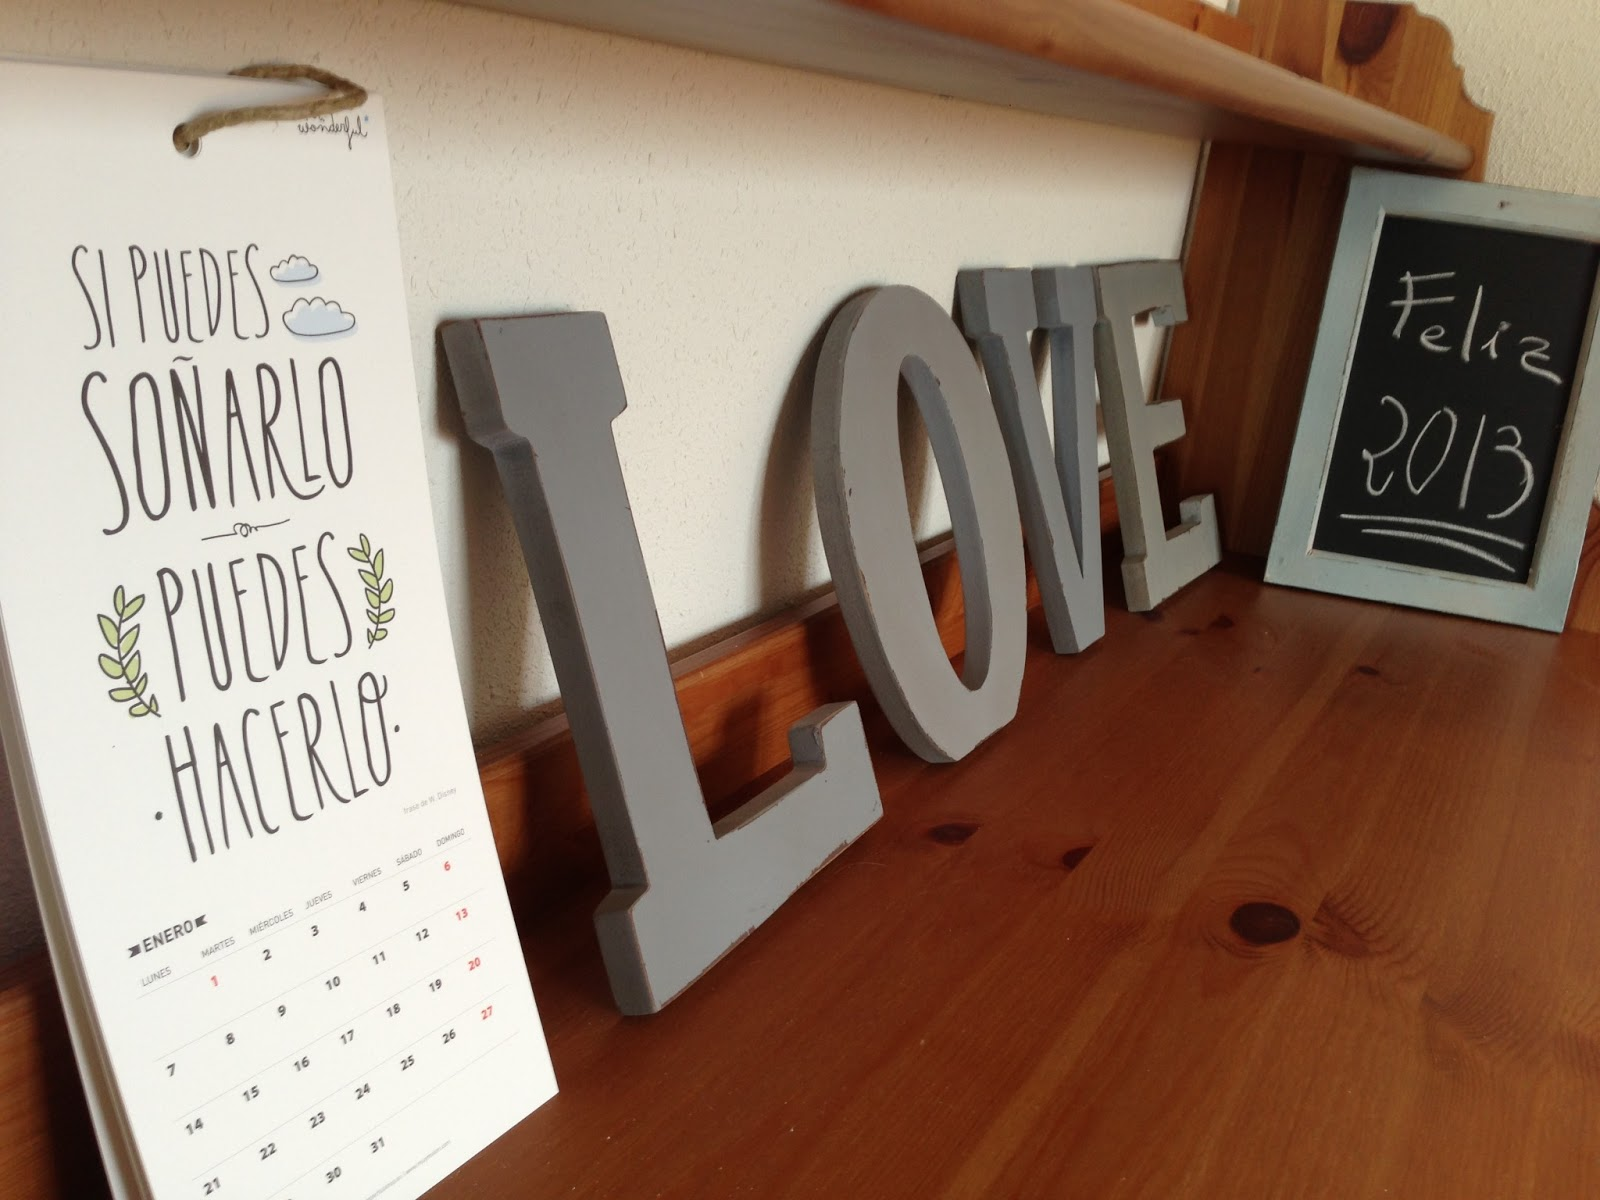 Donde Comprar Letras Para Decorar Beautiful Day Decorar Con Letras